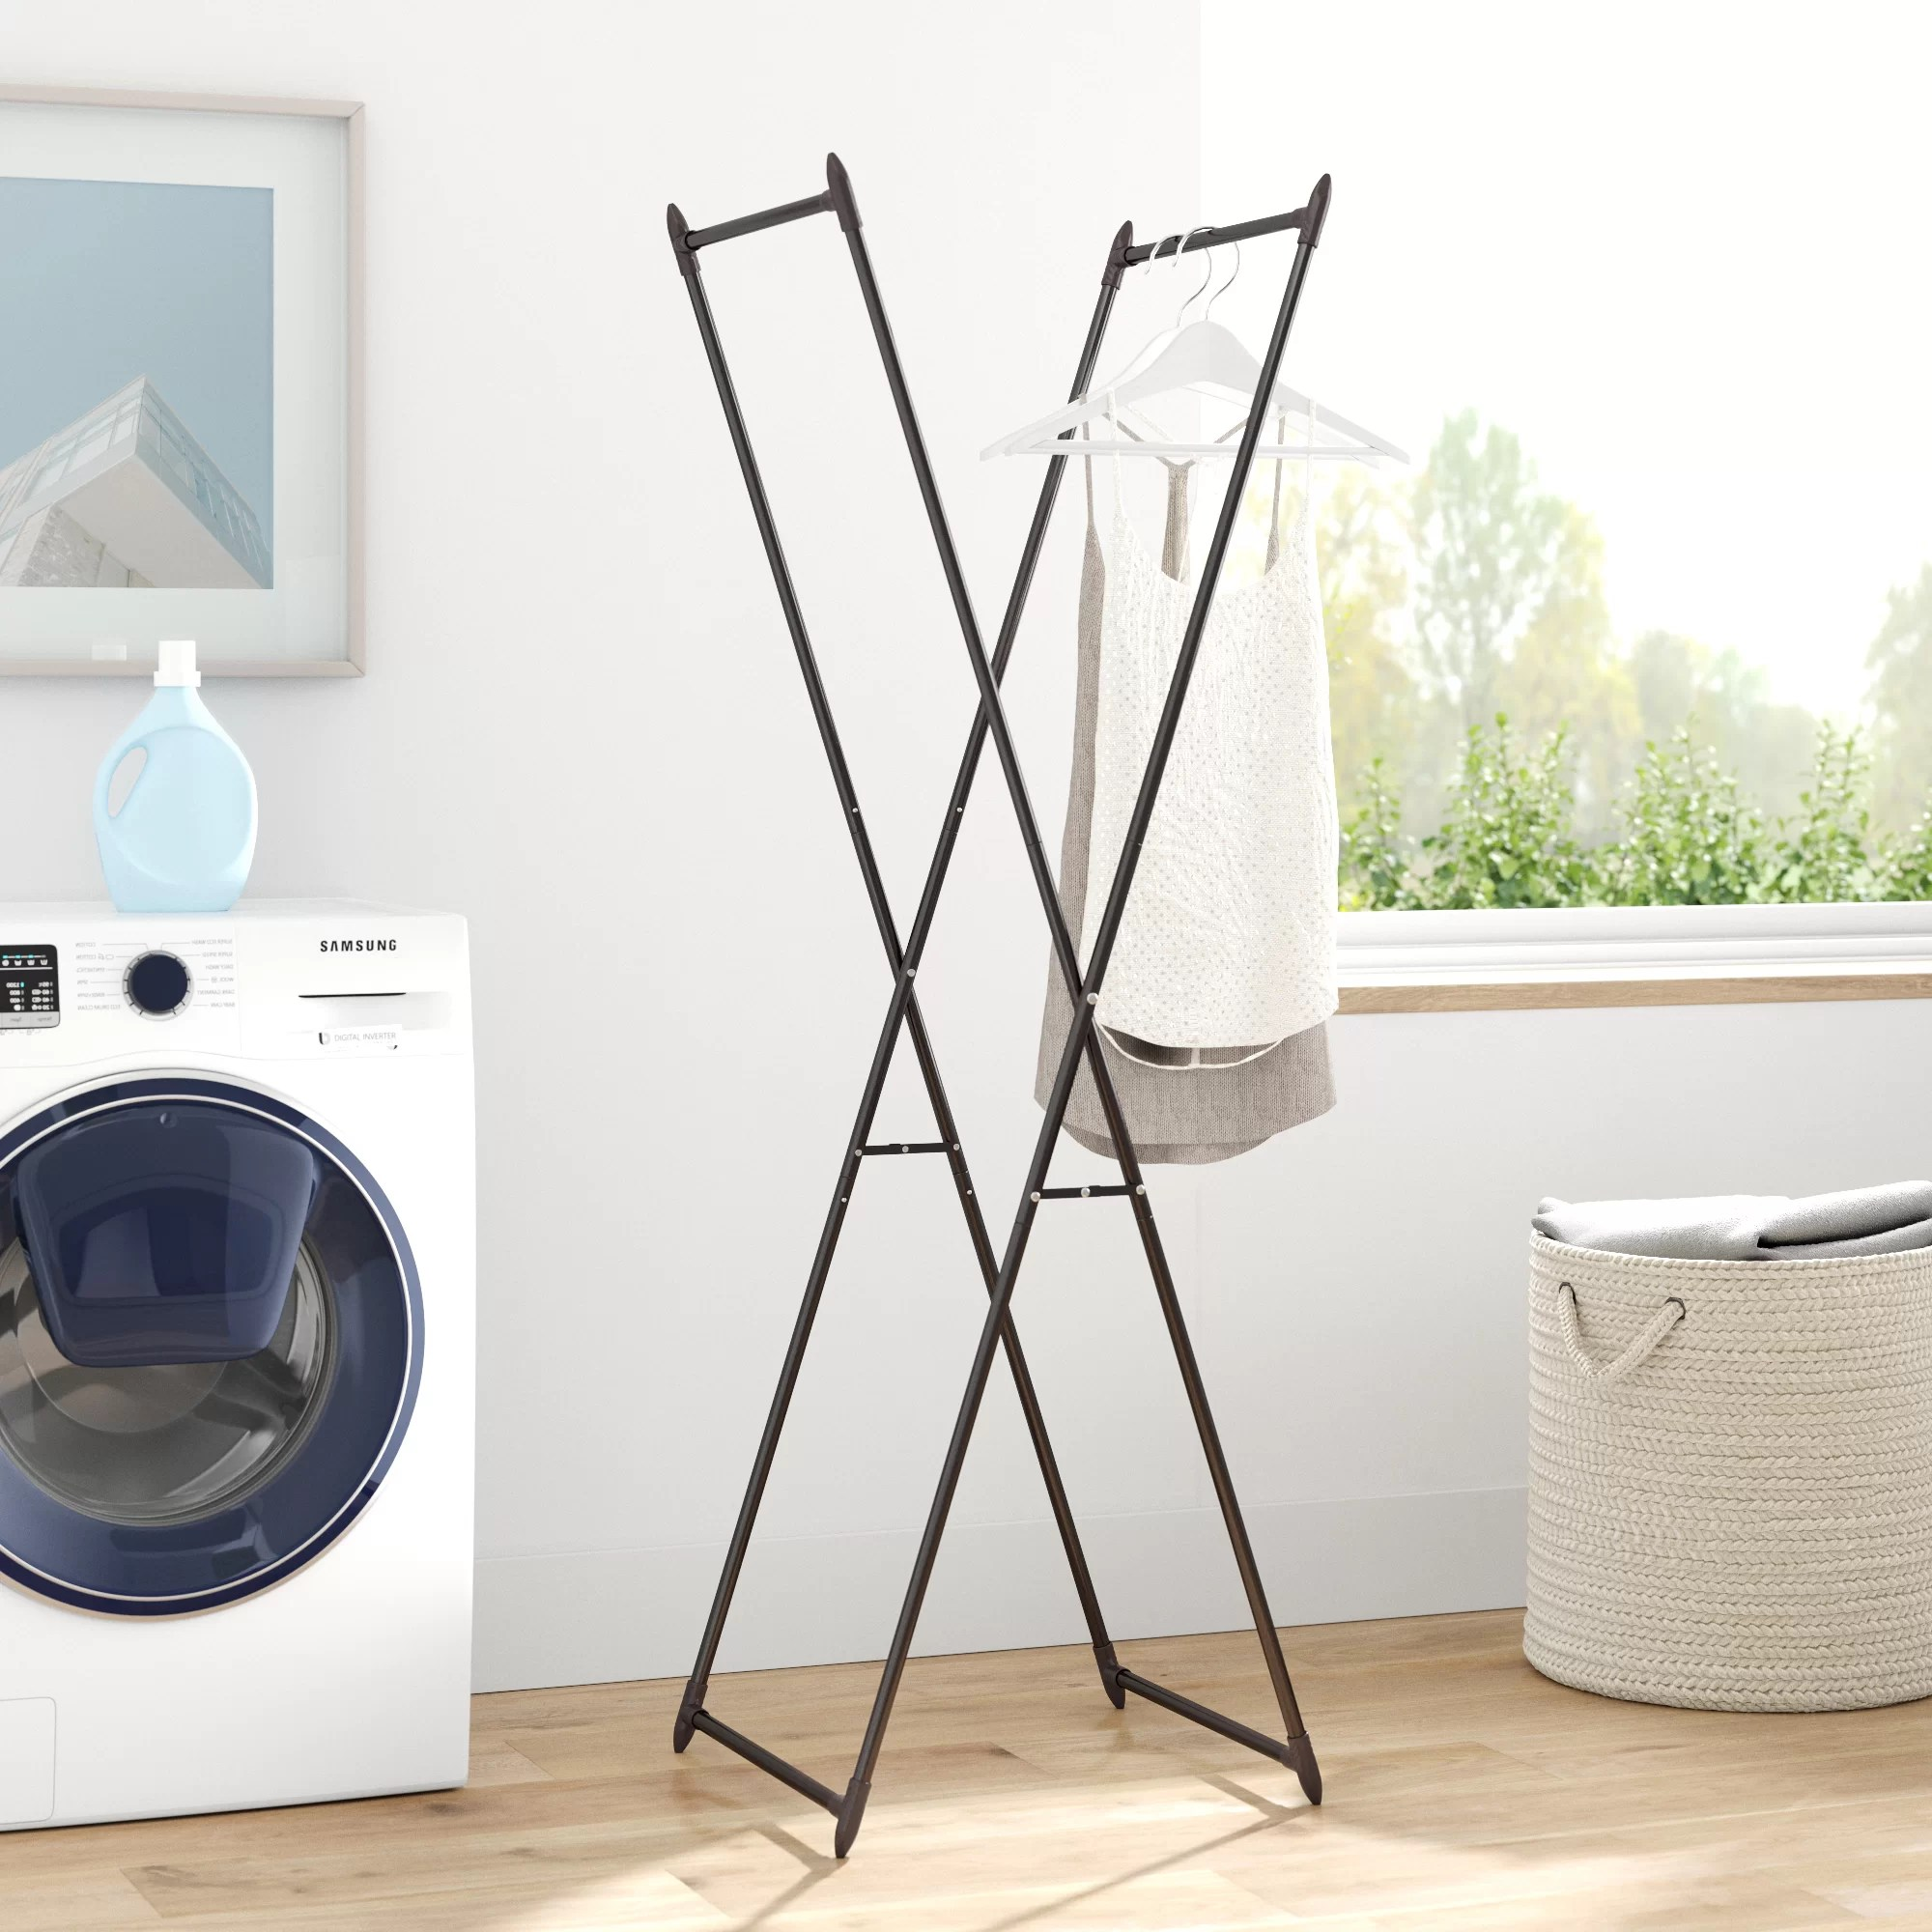 laundry room wall clothes drying racks